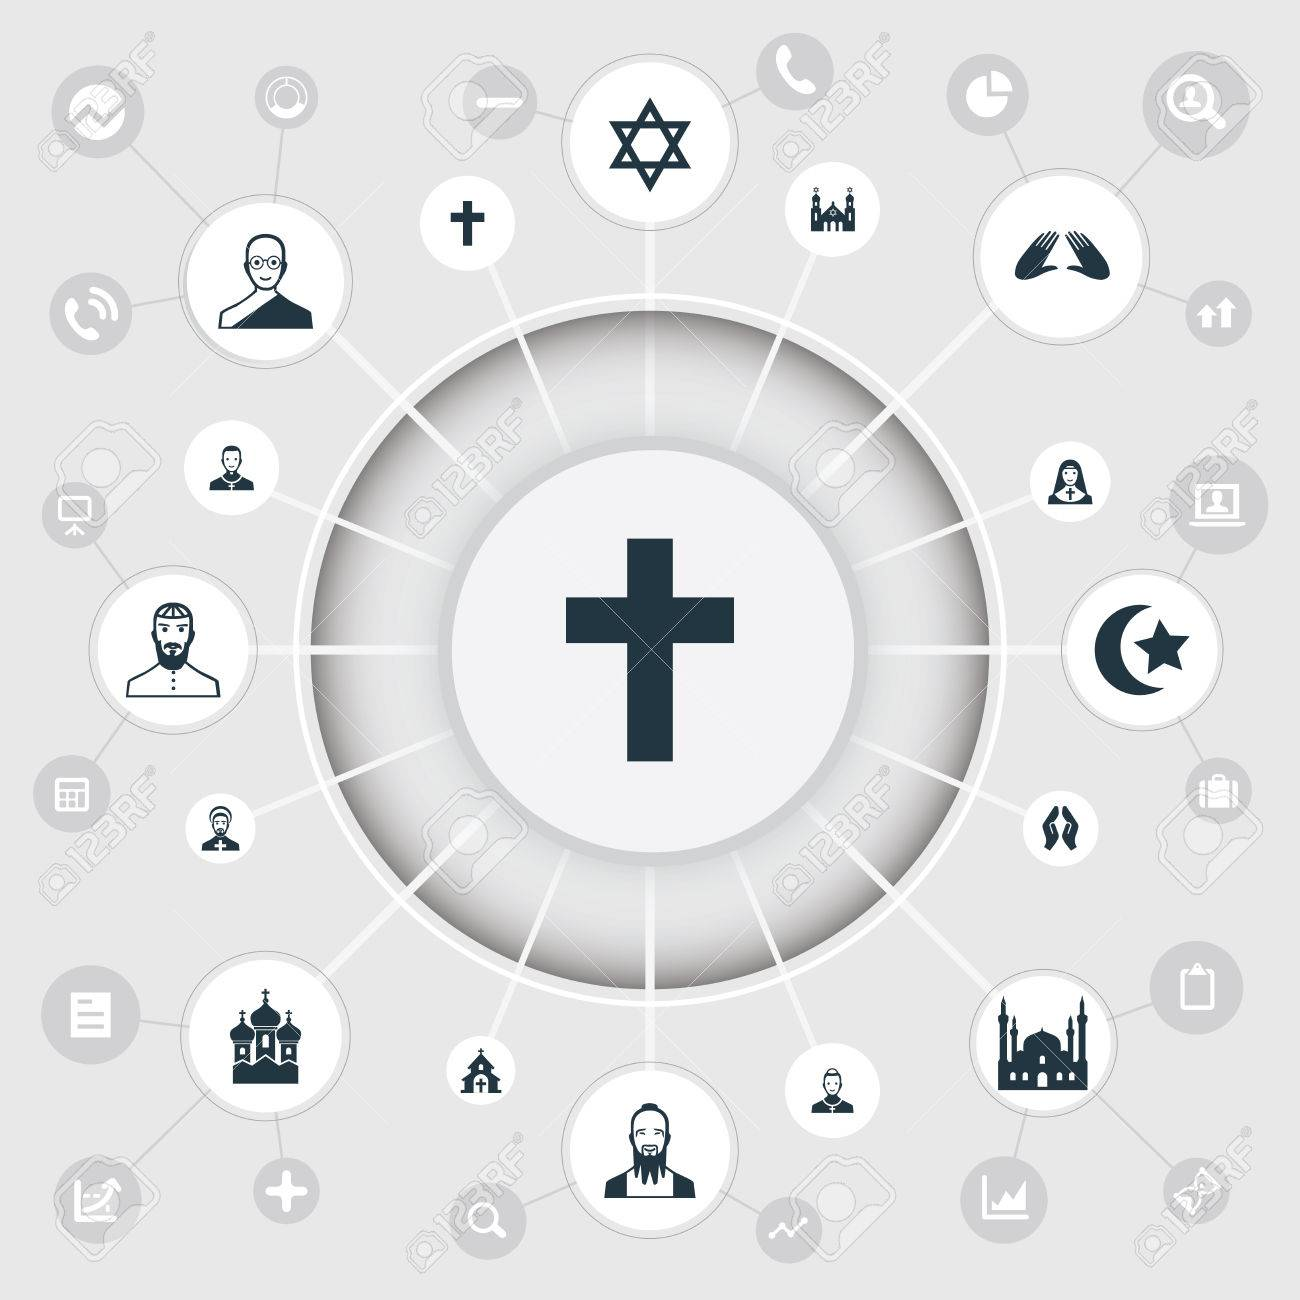 Elements Chaplain David Star Mohammedanism And Other Synonyms